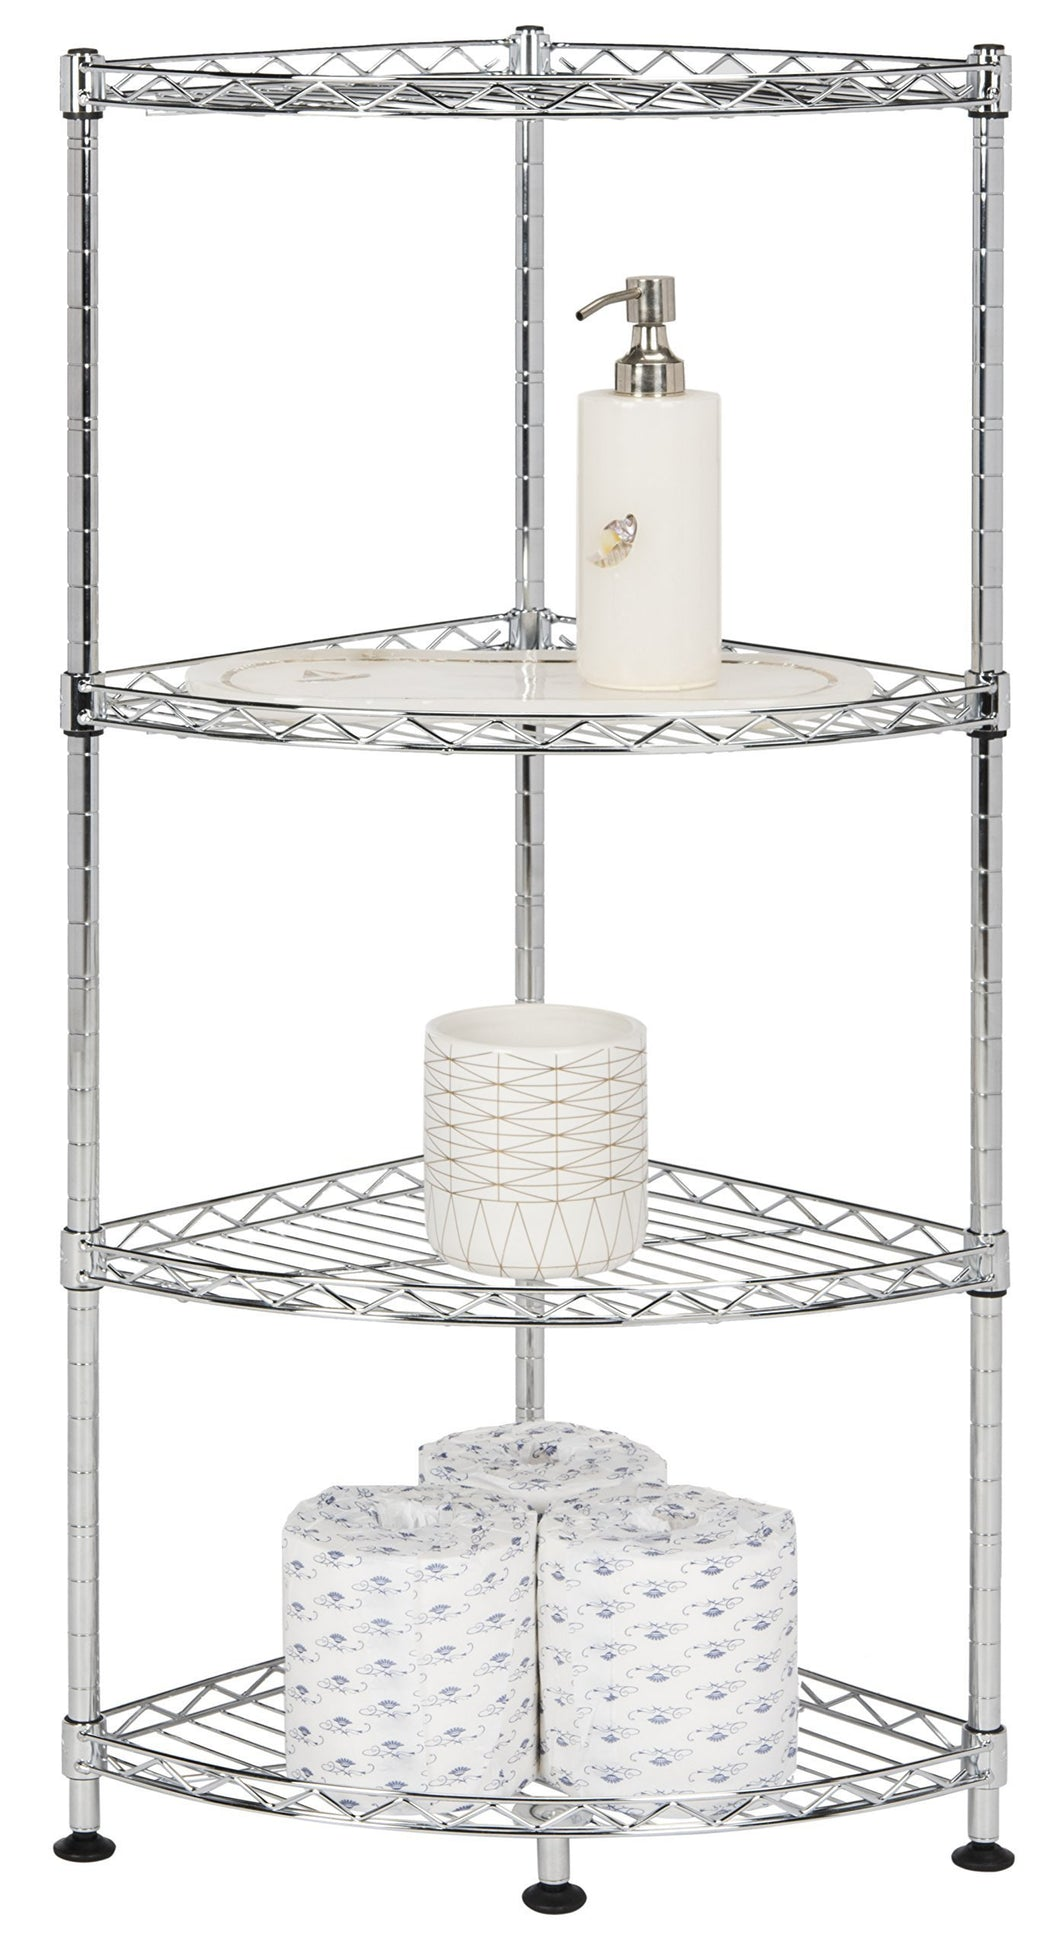 Shop happimess aleah 4 tier corner storage rack chrome